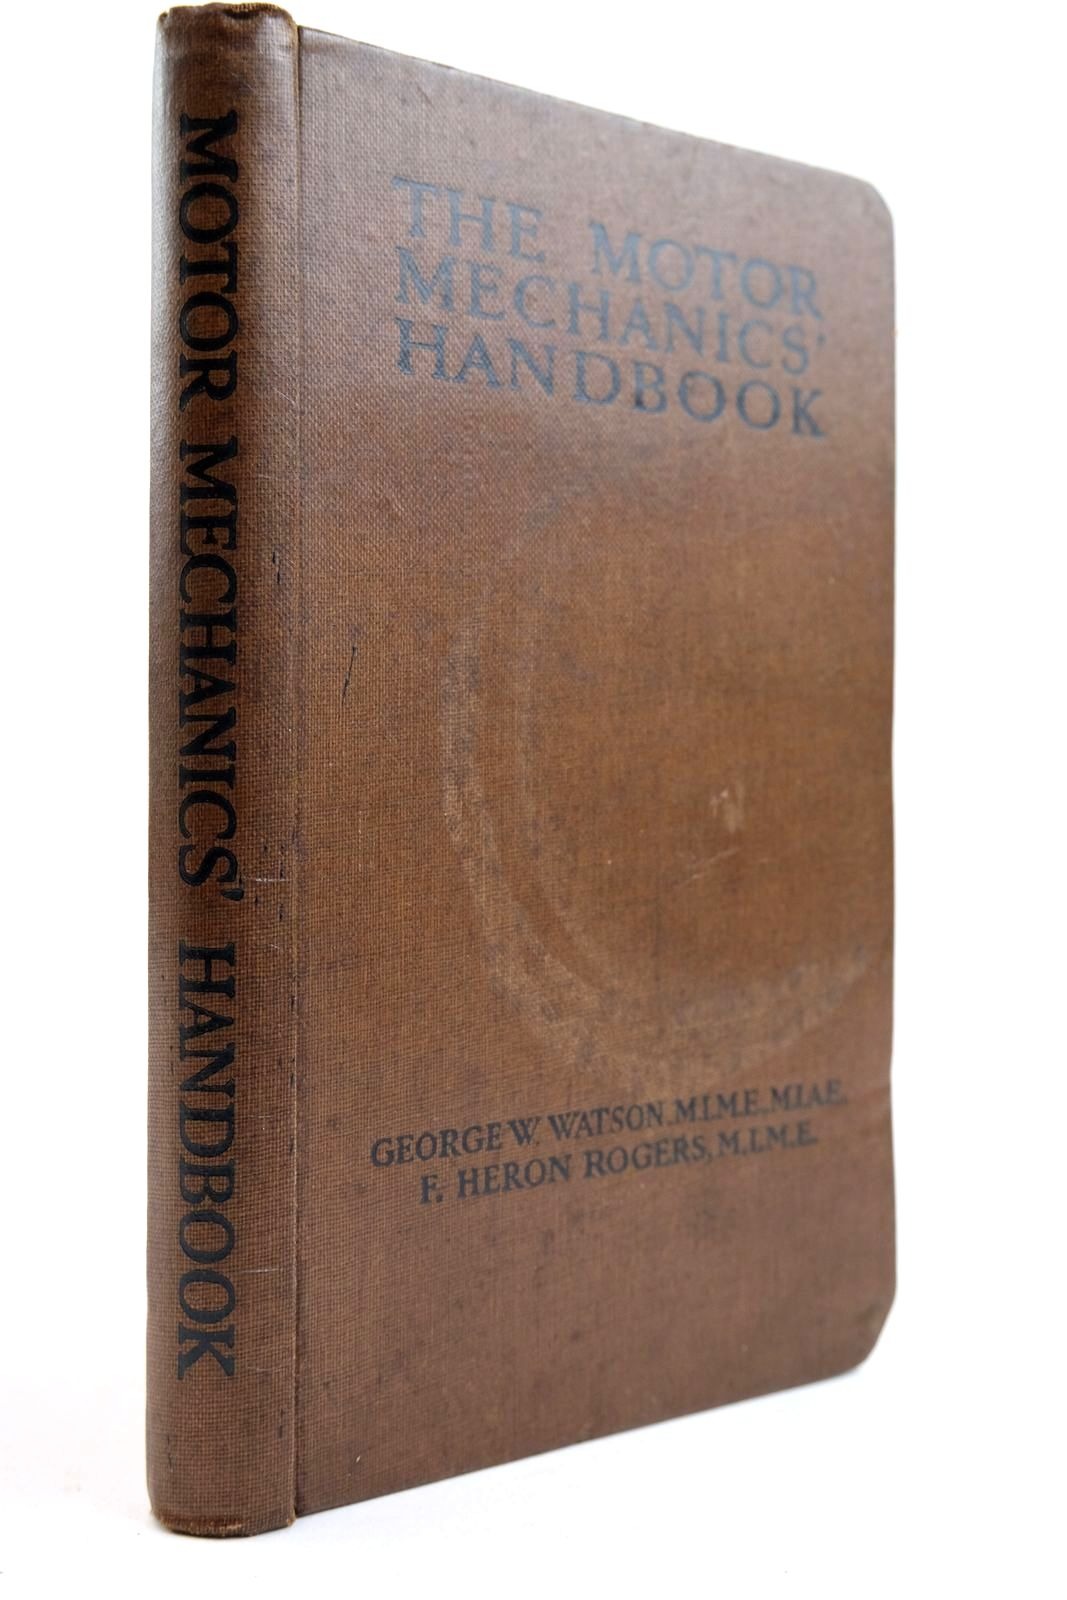 Photo of THE MOTOR MECHANICS' HANDBOOK- Stock Number: 2133946